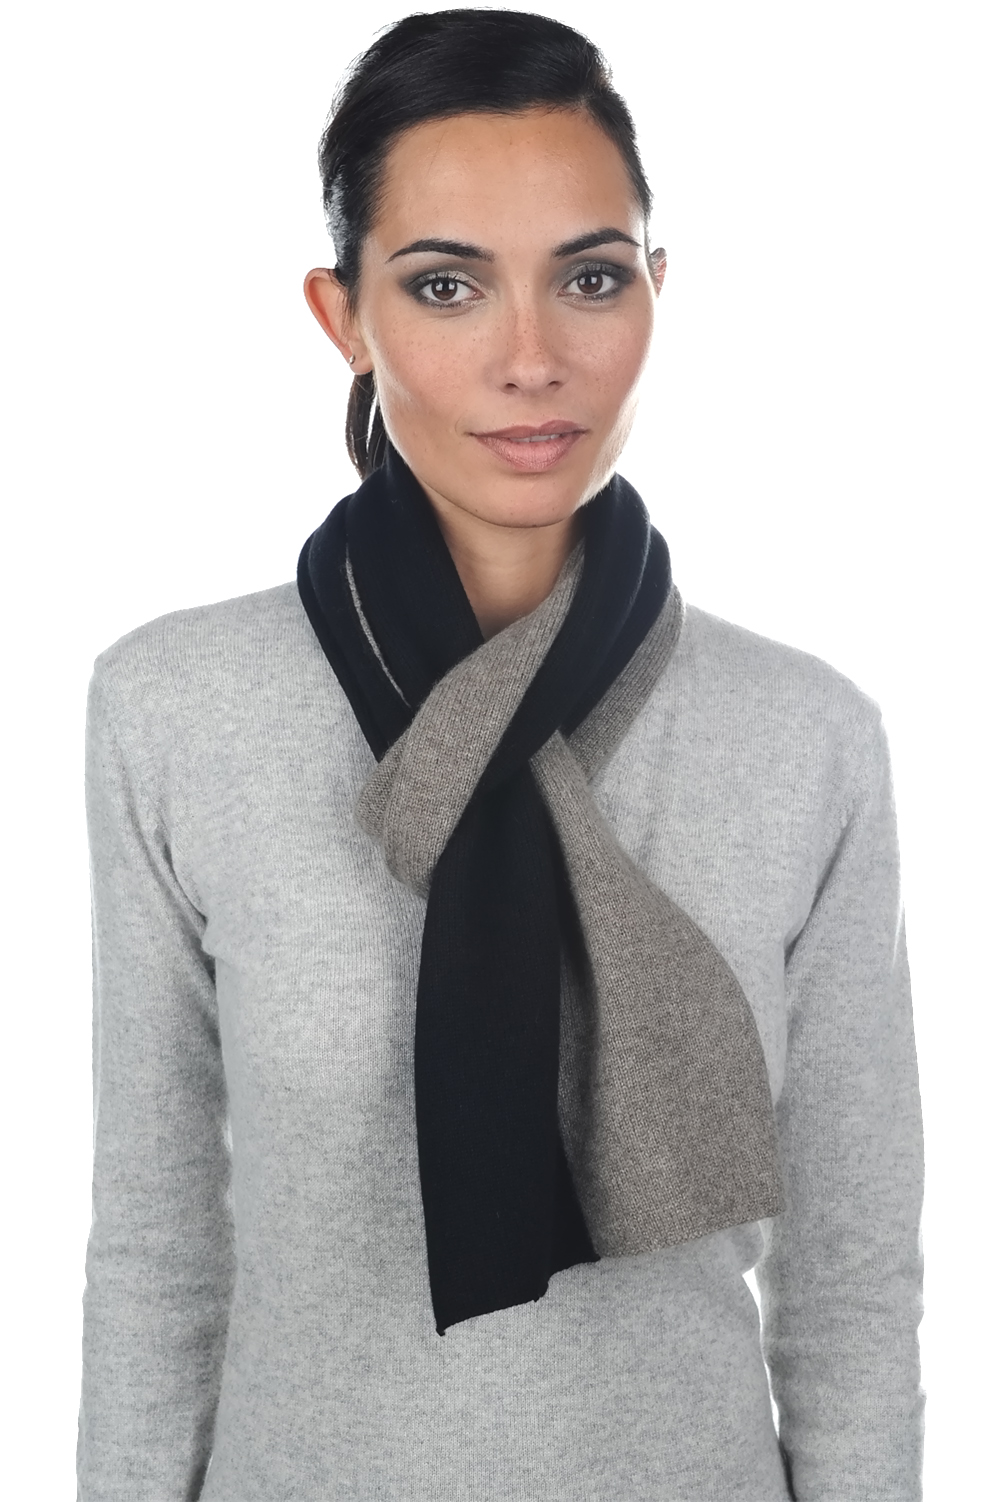 cashmere  yak accessories scarves  mufflers luvo black natural grey 164 x 26 cm